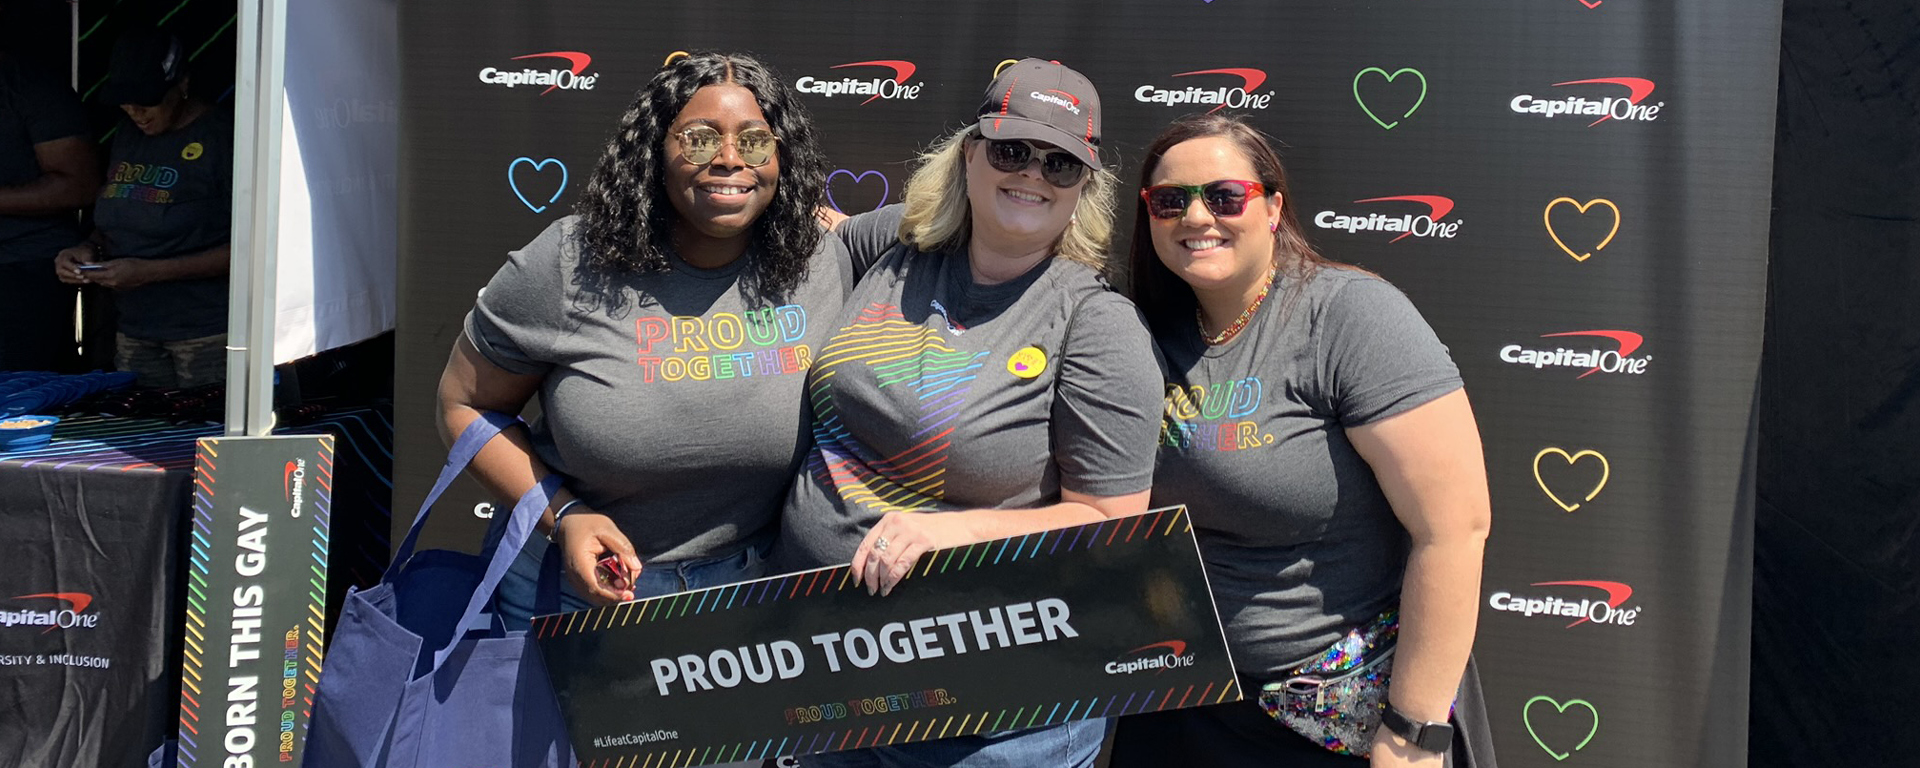 Three Capital One associates stand in front of a black backdrop with colorful hearts holding a sign that says